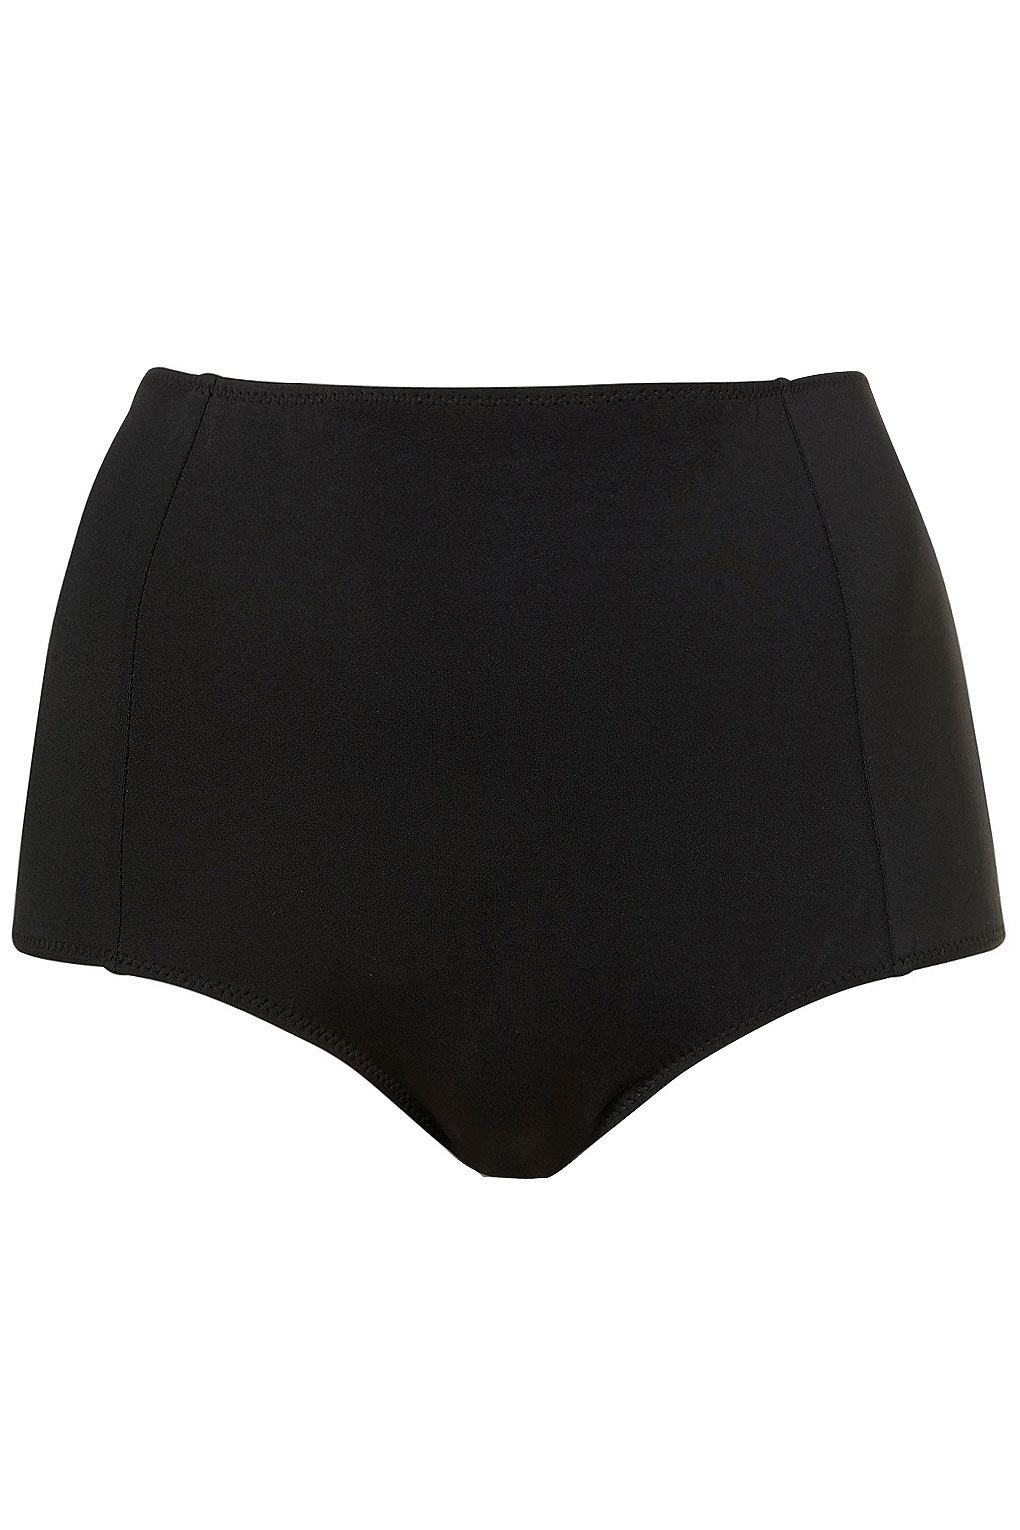 Black High Waisted Bikini Pants - Swimwear - Clothing - Topshop USA on Wanelo